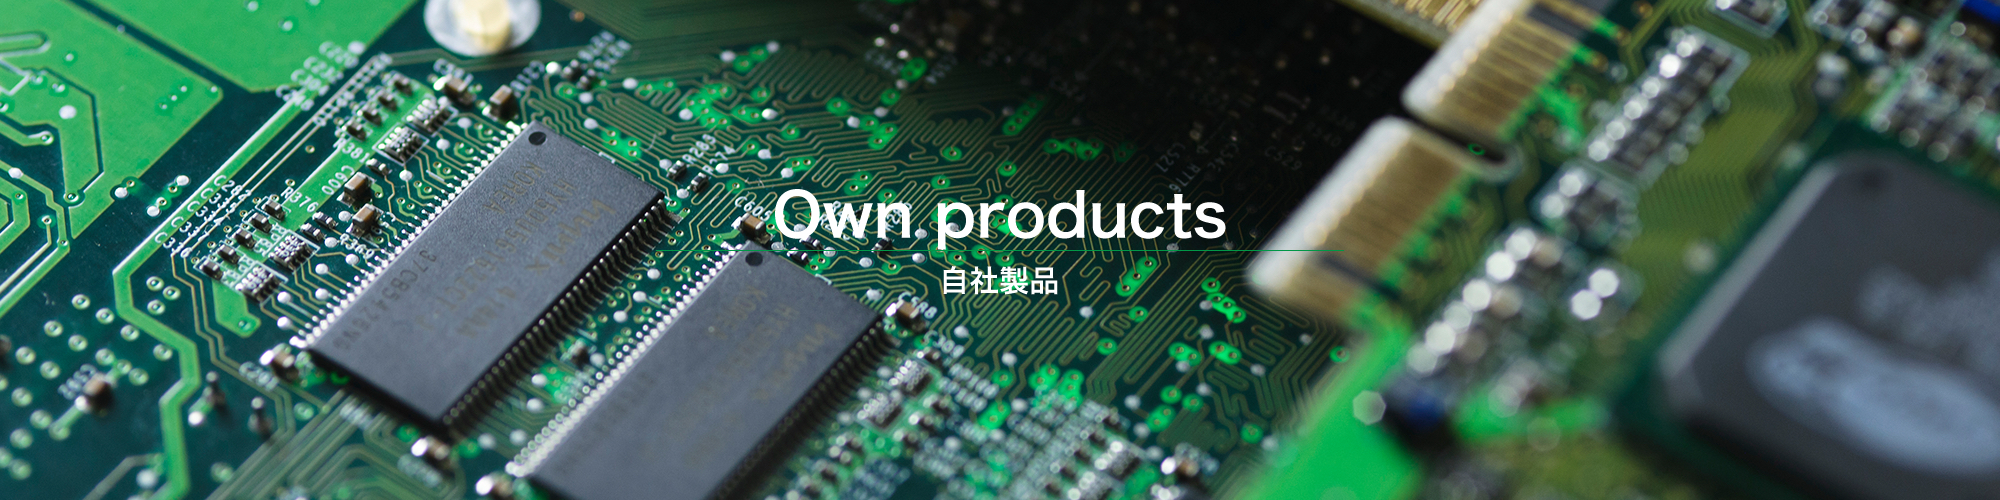 Own products